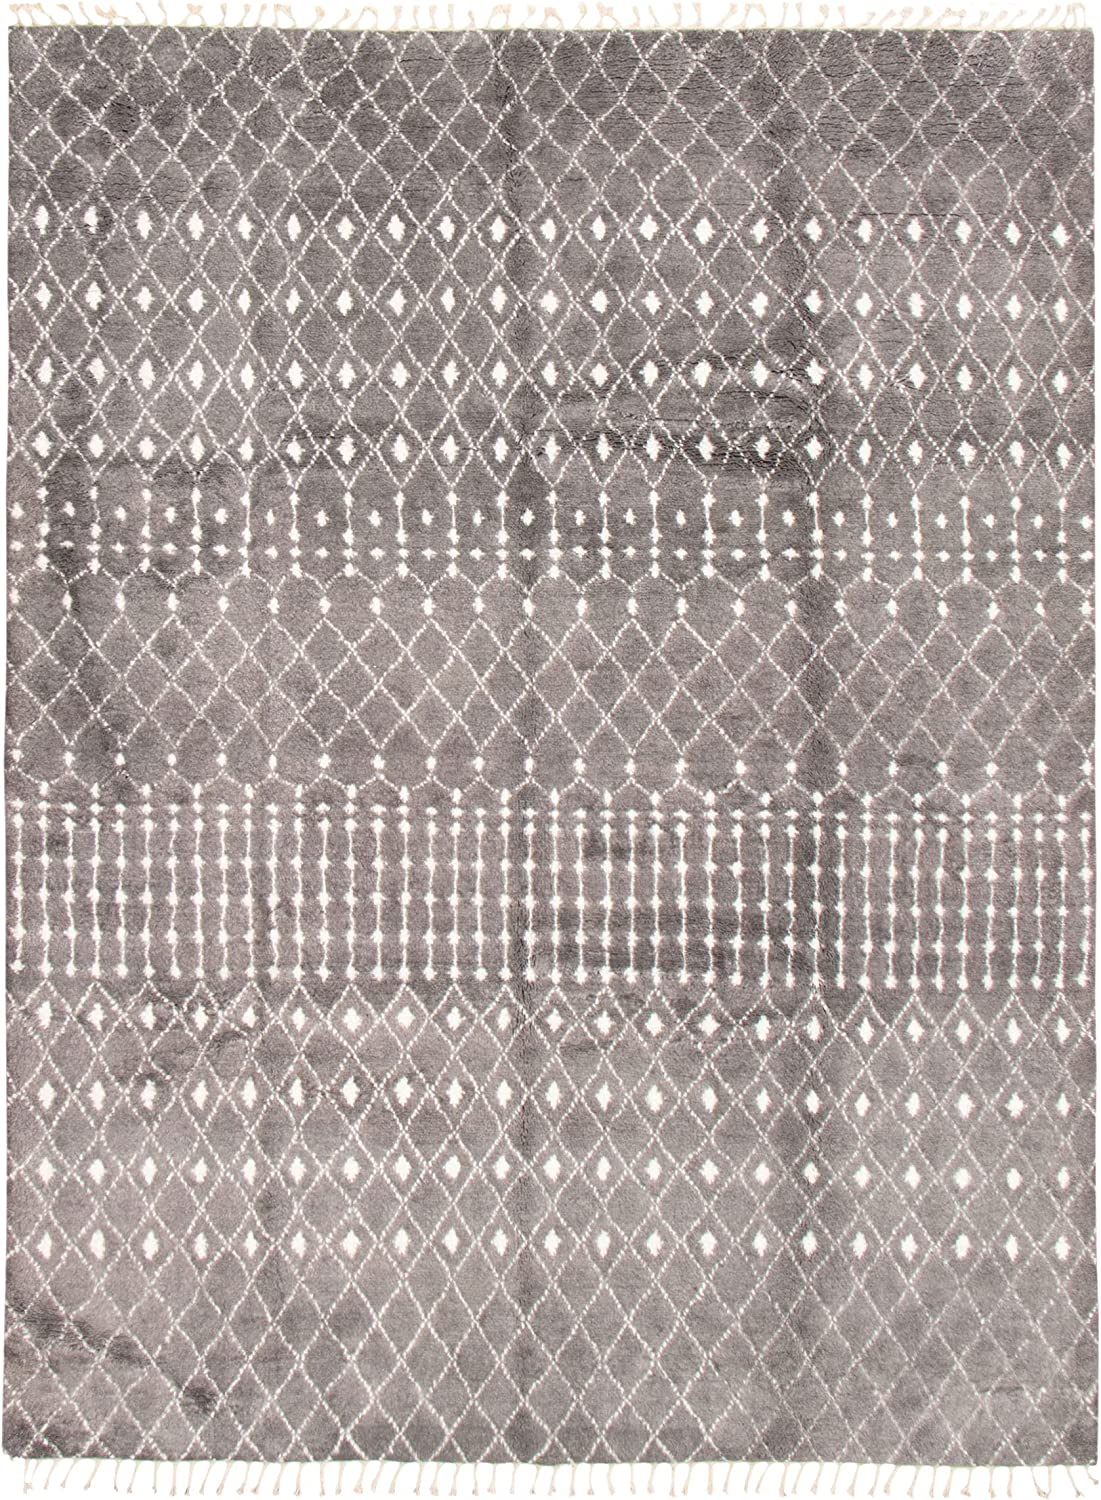 eCarpet Gallery Popular brand in the world Large Area Rug Bedroom for Room Hand-K Living Ranking TOP6